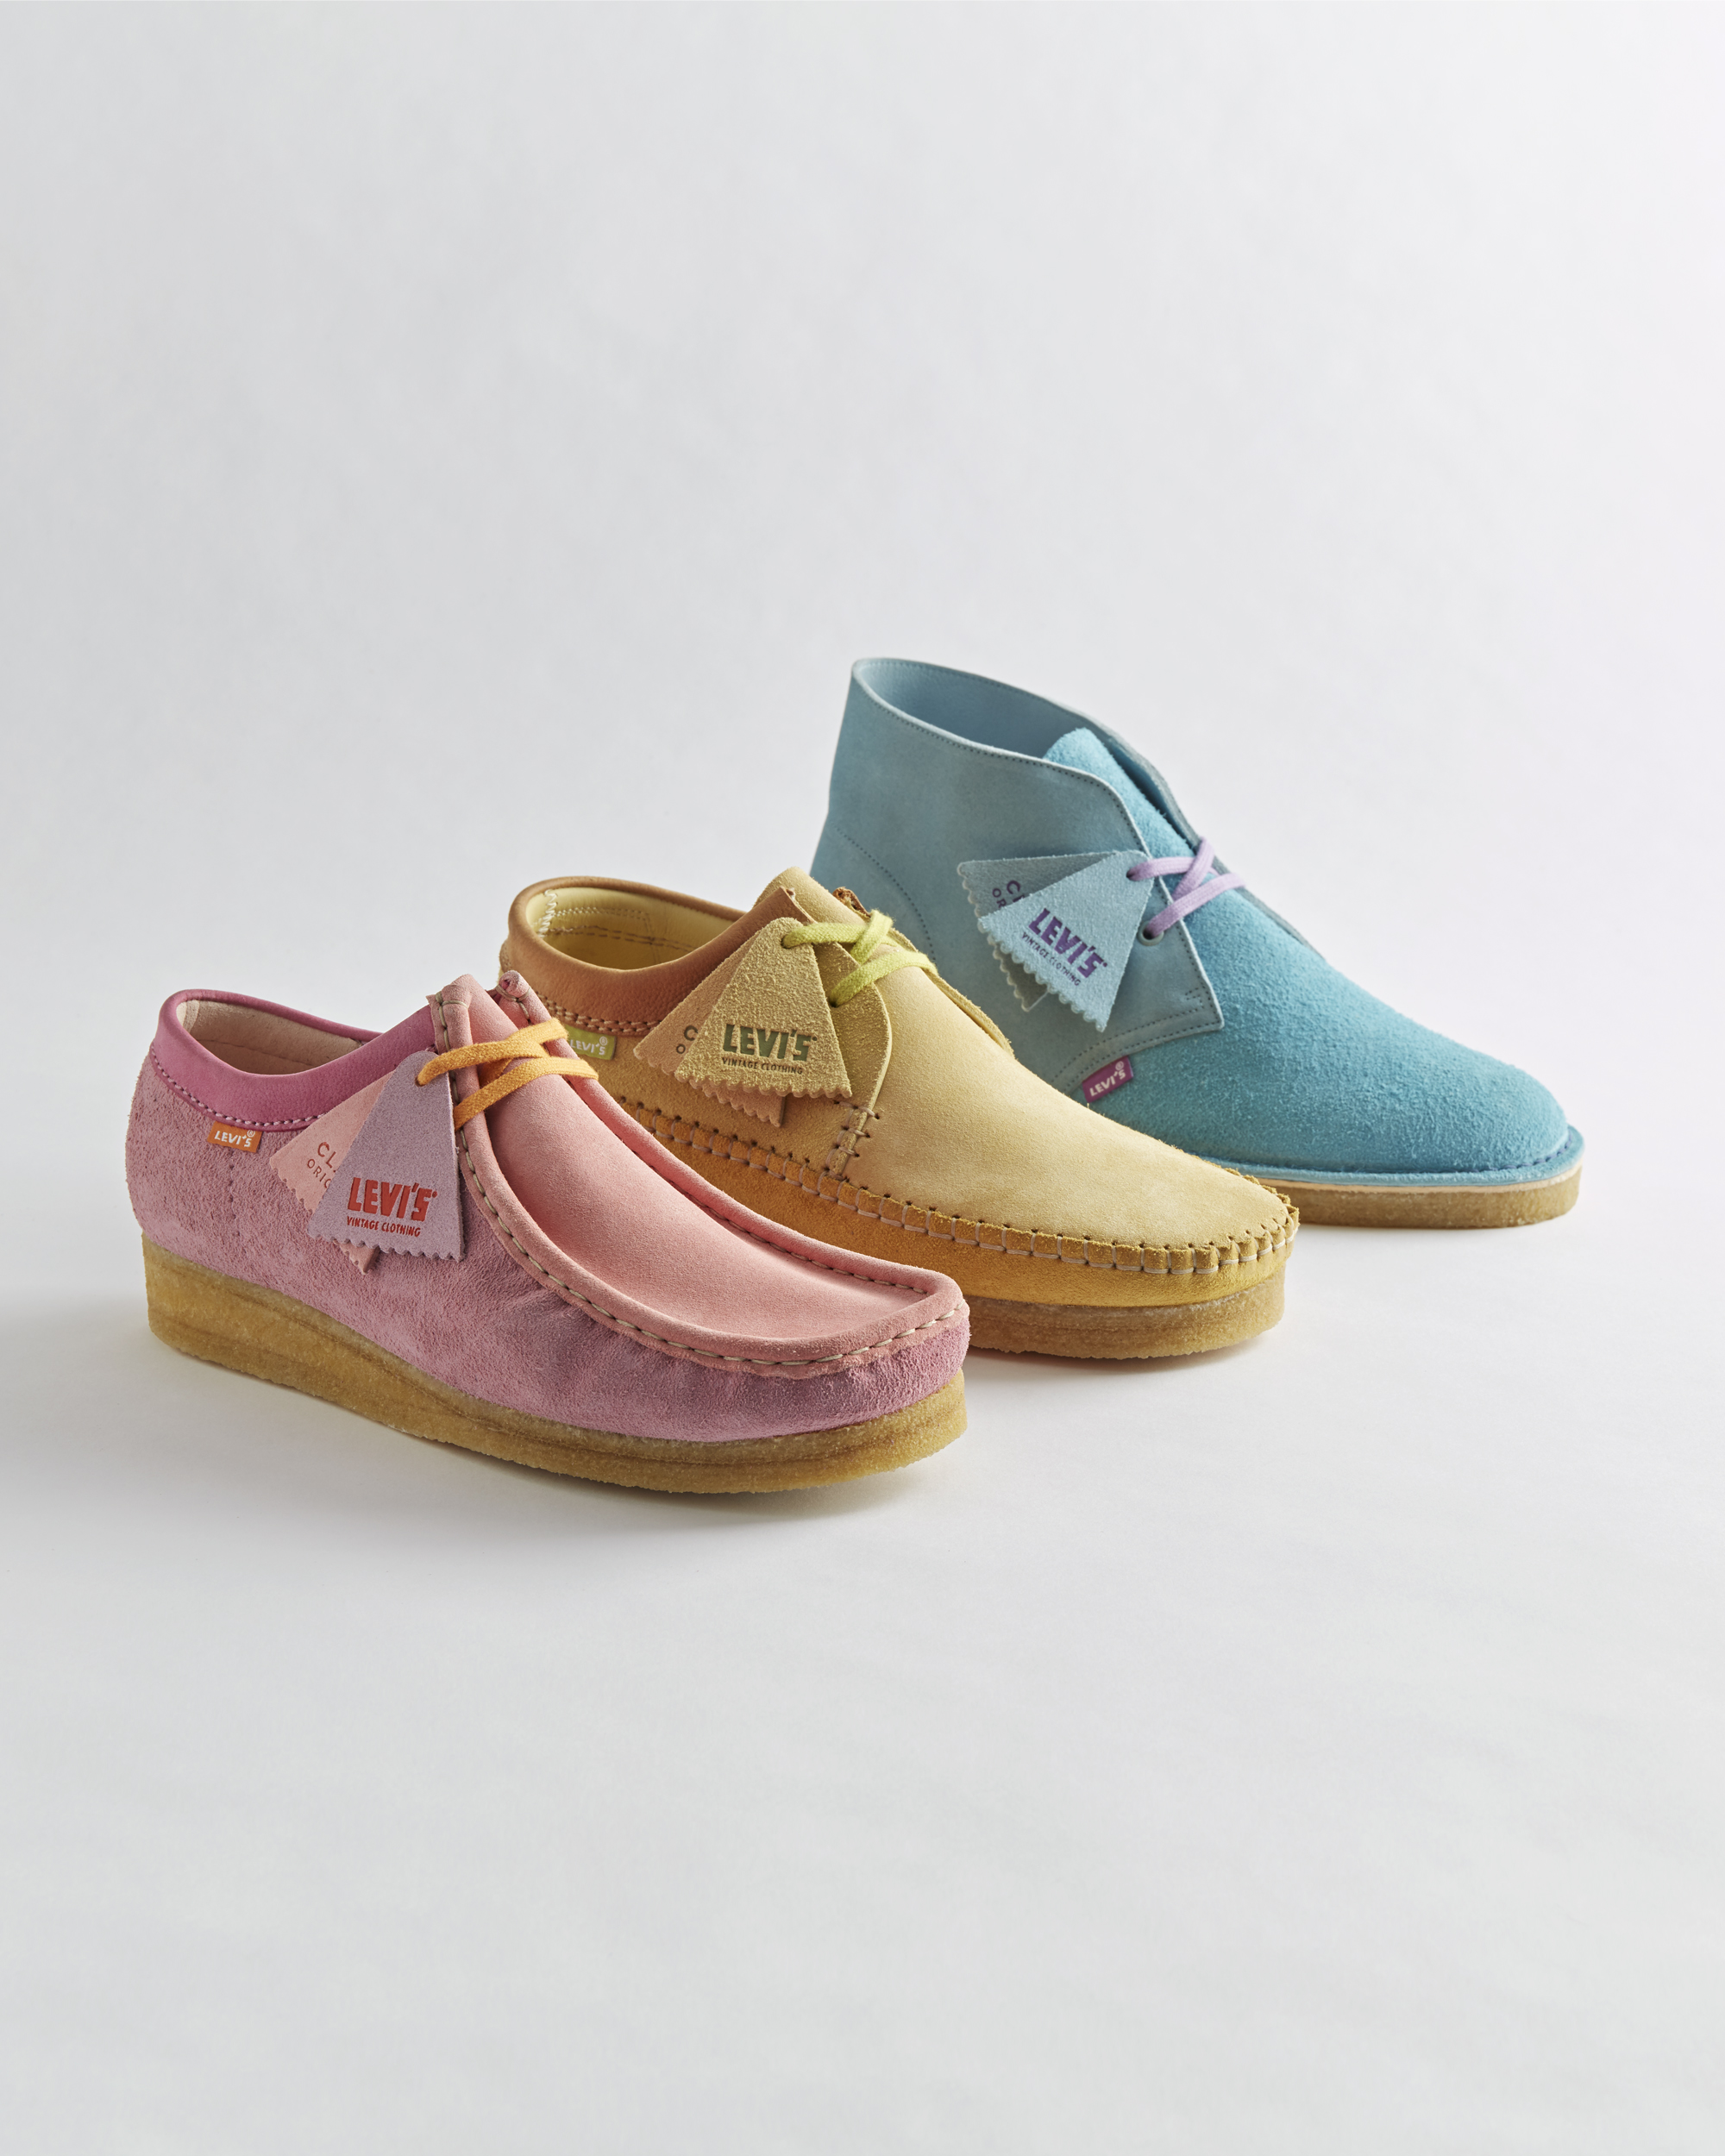 clarks shoes colorful